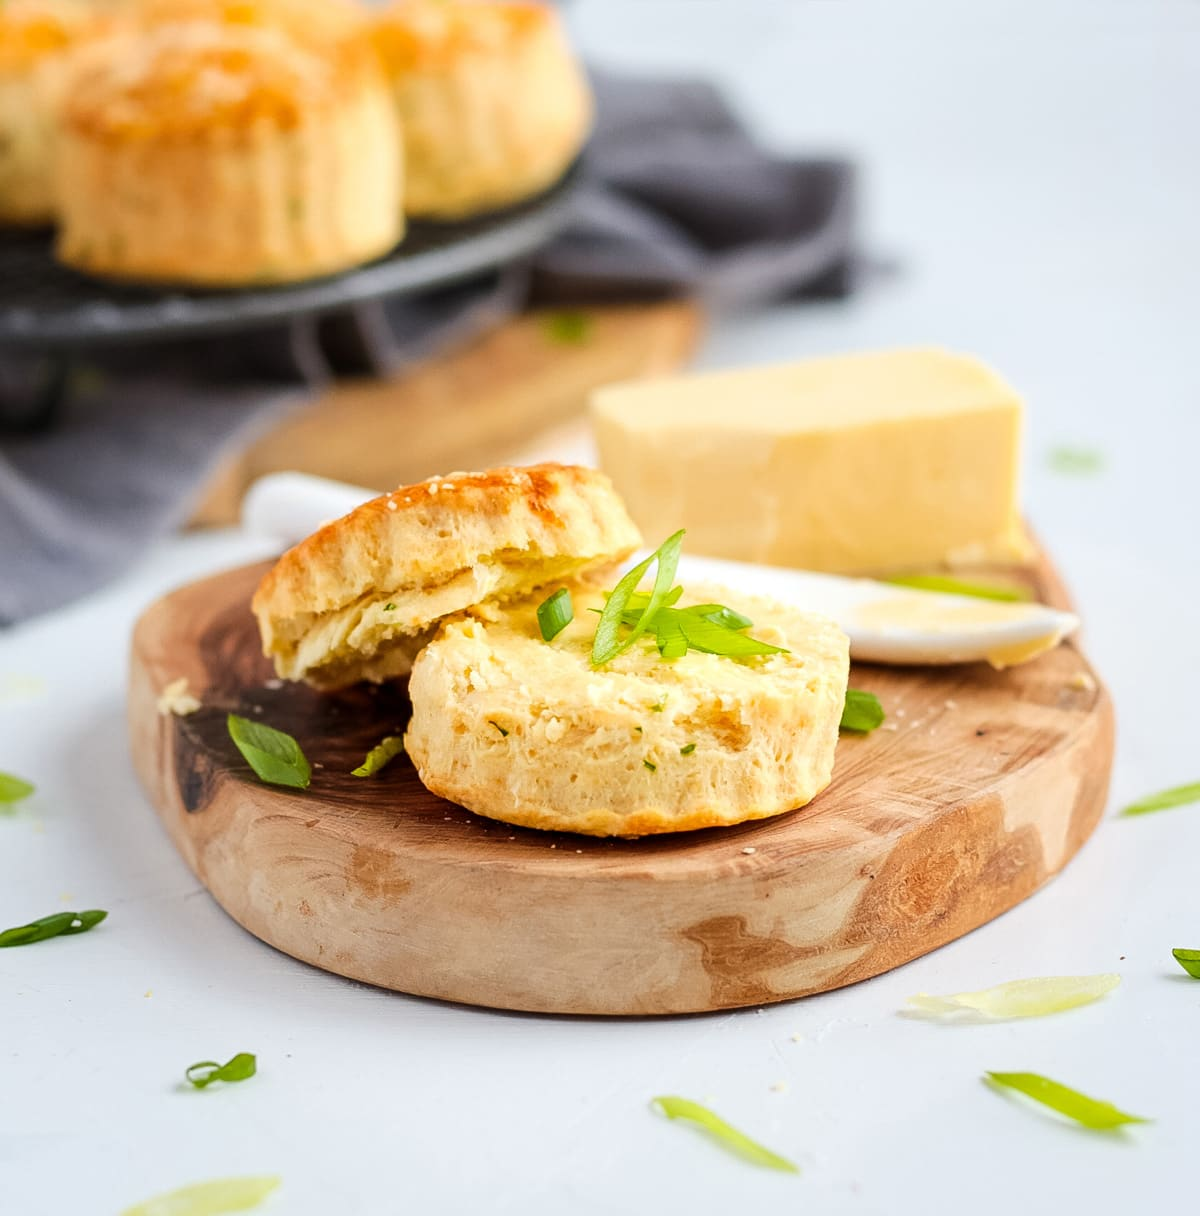 One scone on a wooden tray sliced in half and topped with butter